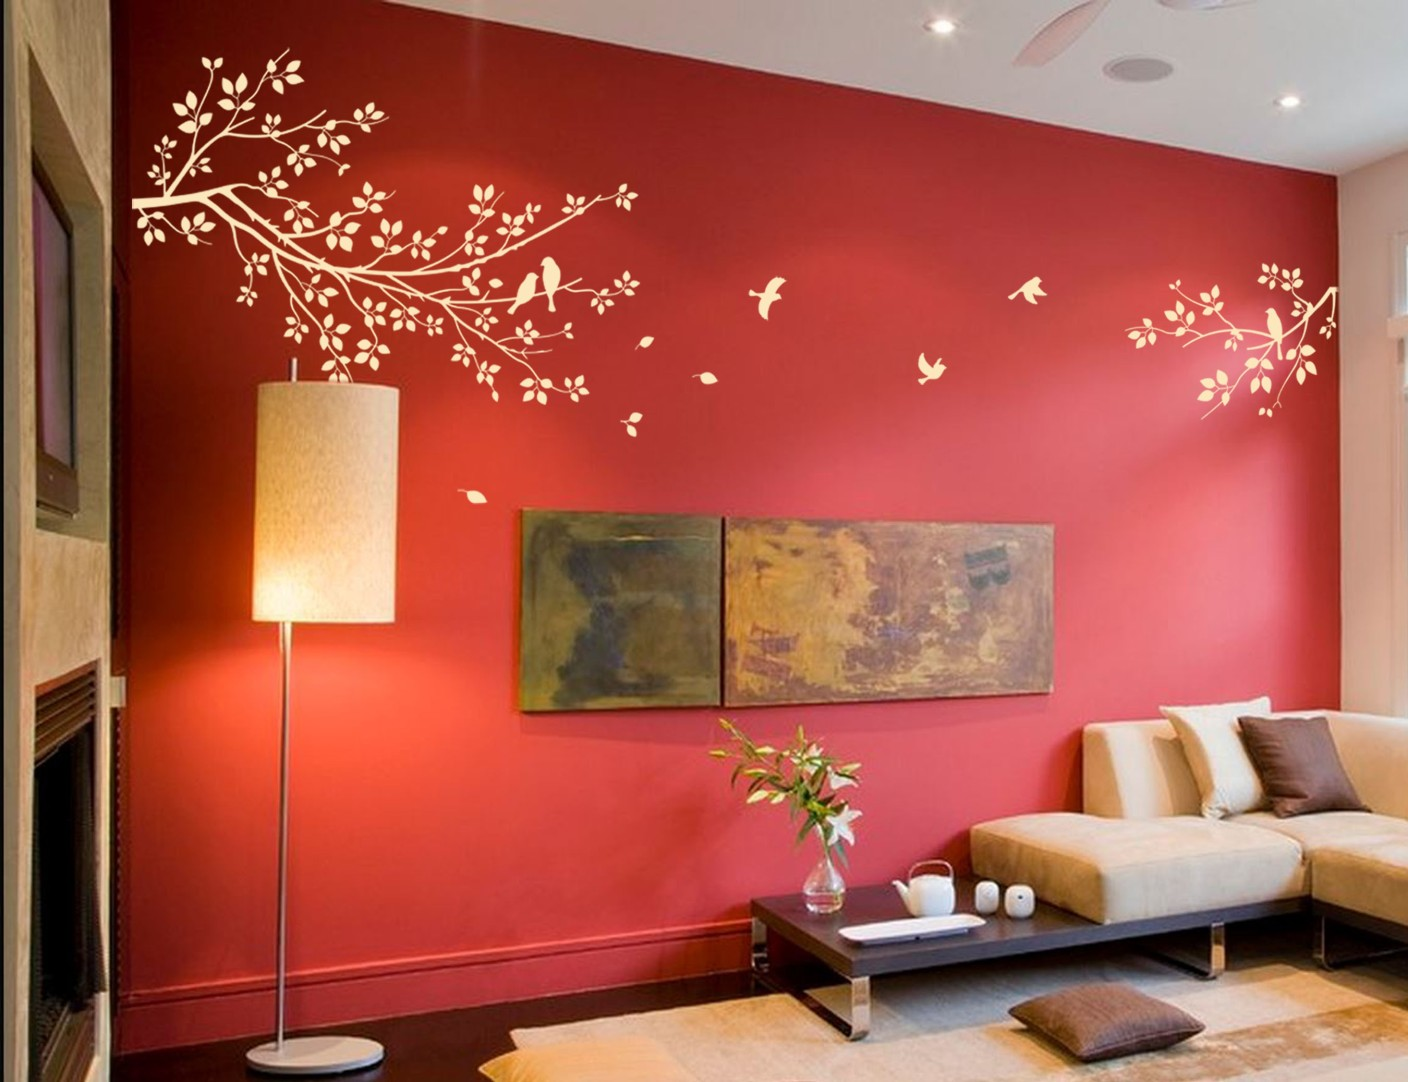 Wall design pvc sticker price in india buy wall design for Wall designer online